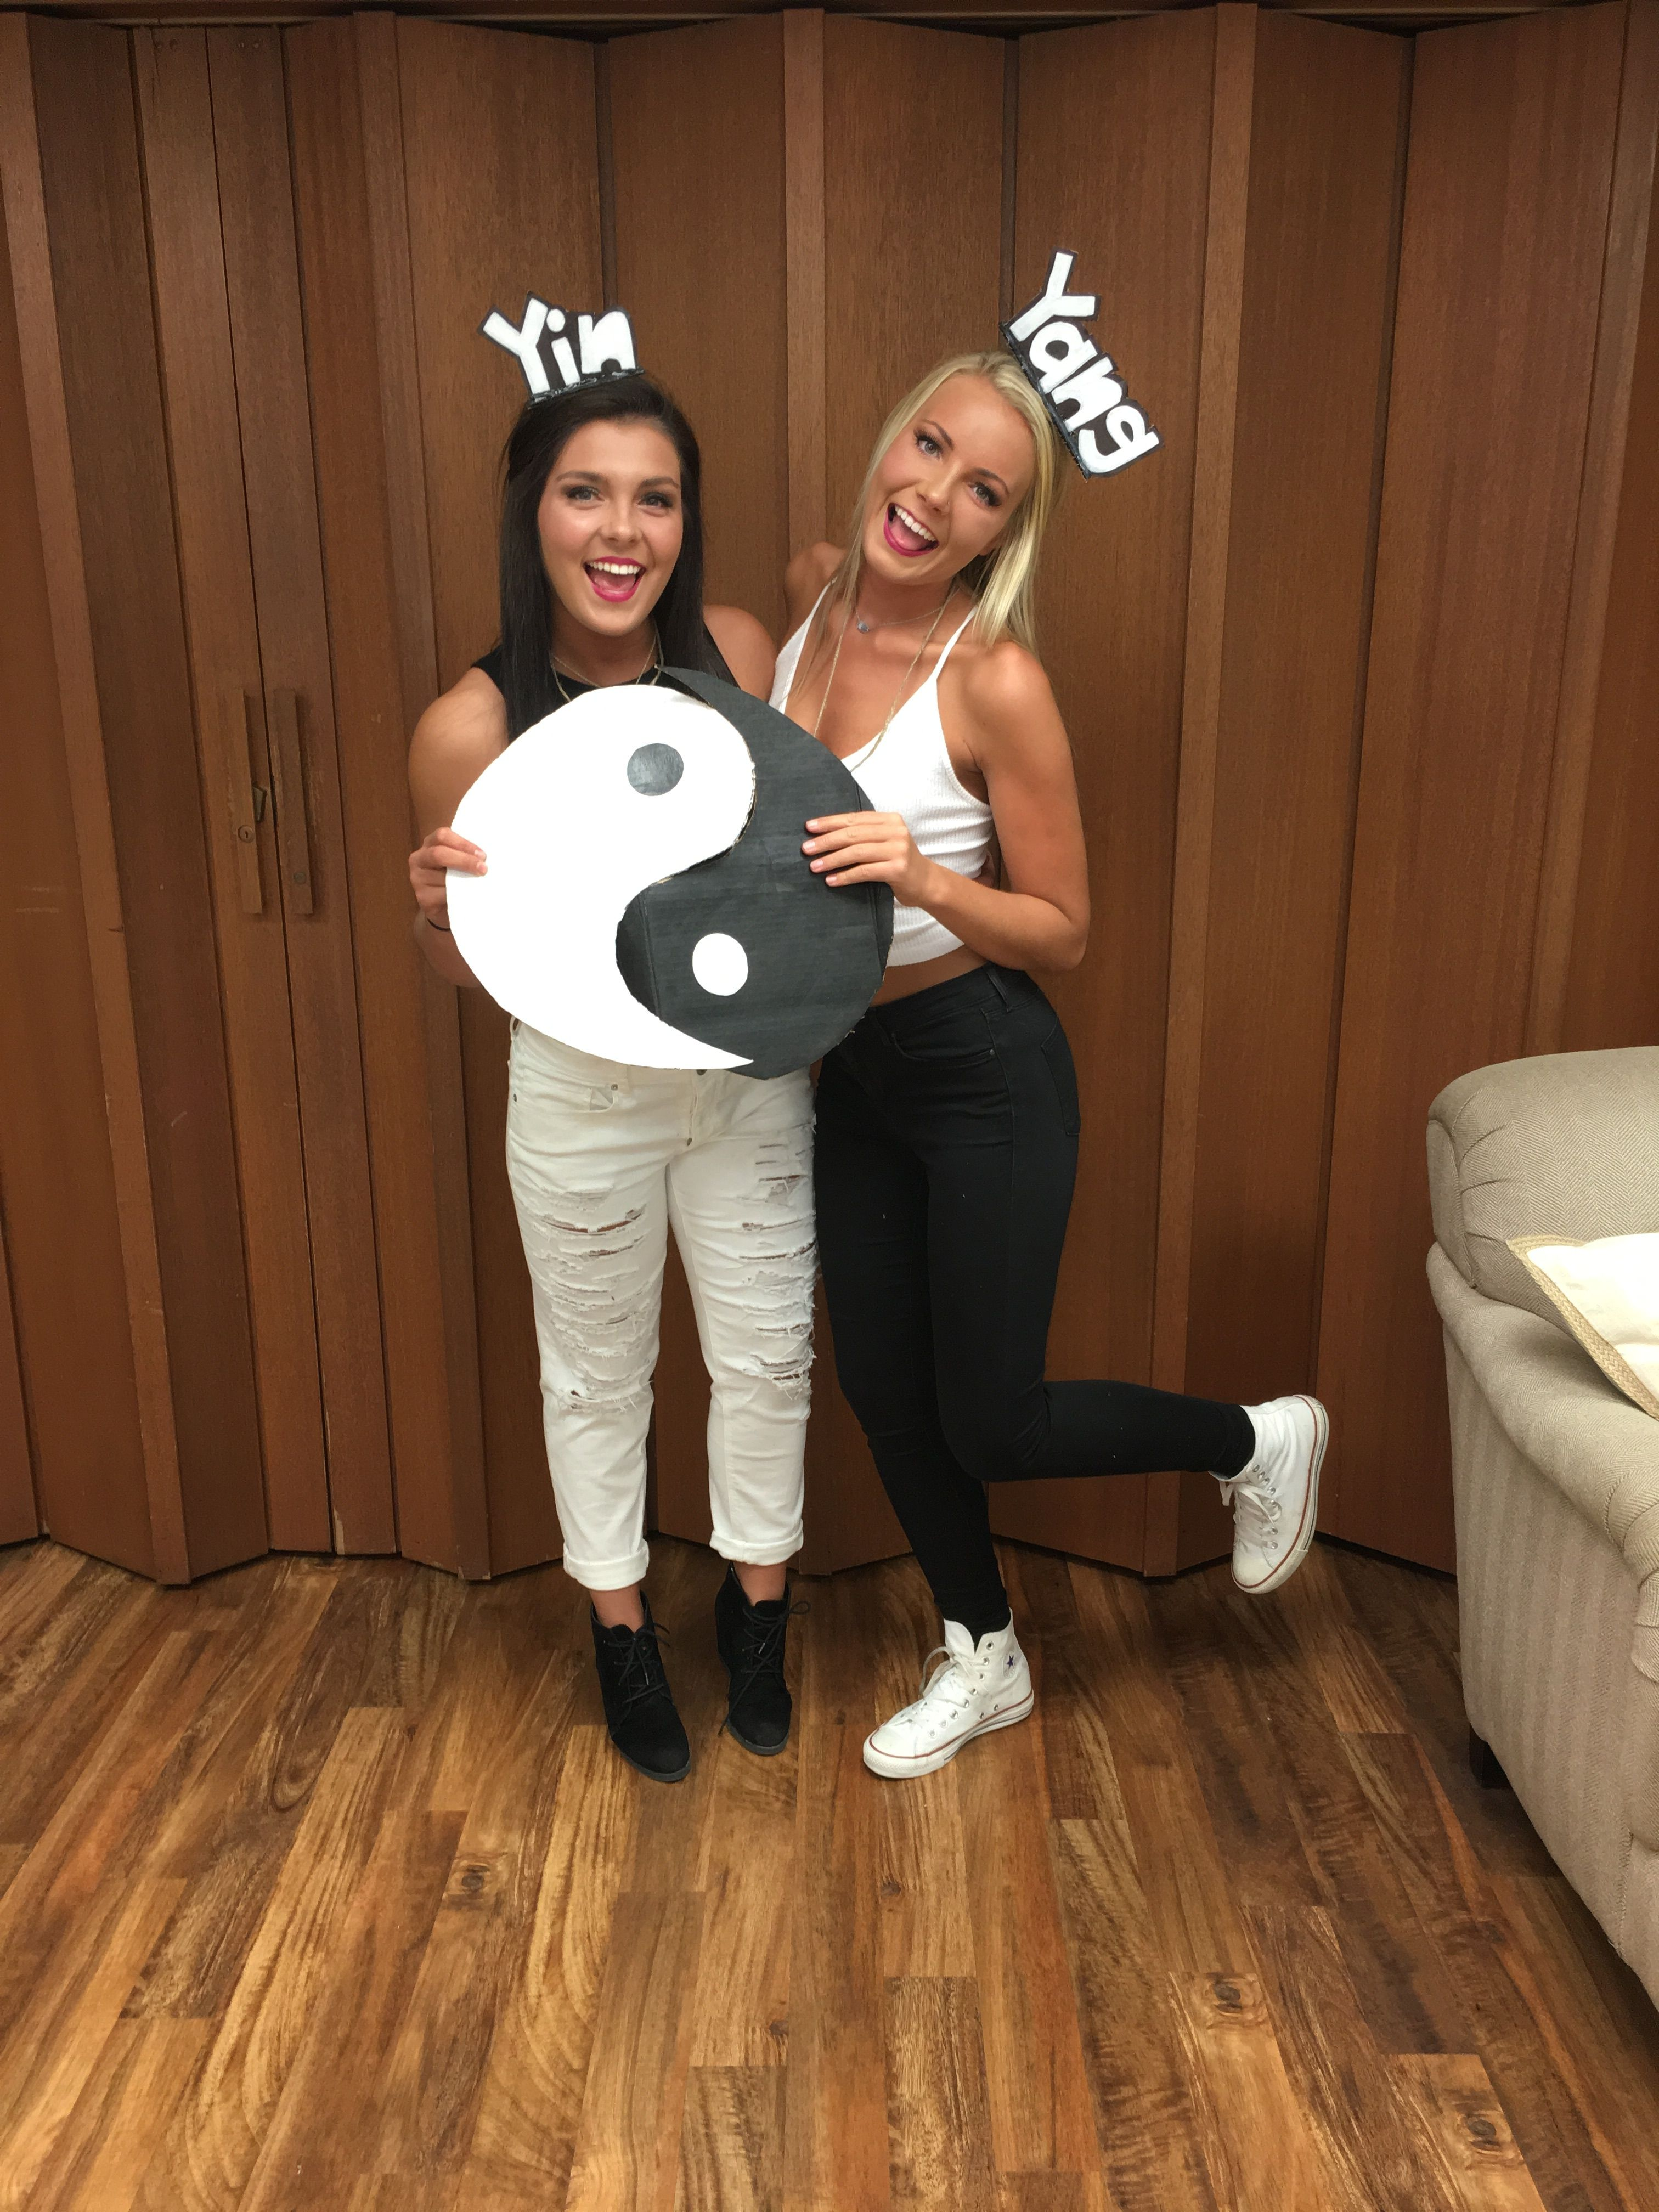 Yin and Yang halloween costume idea! We wore cardboard cutouts as